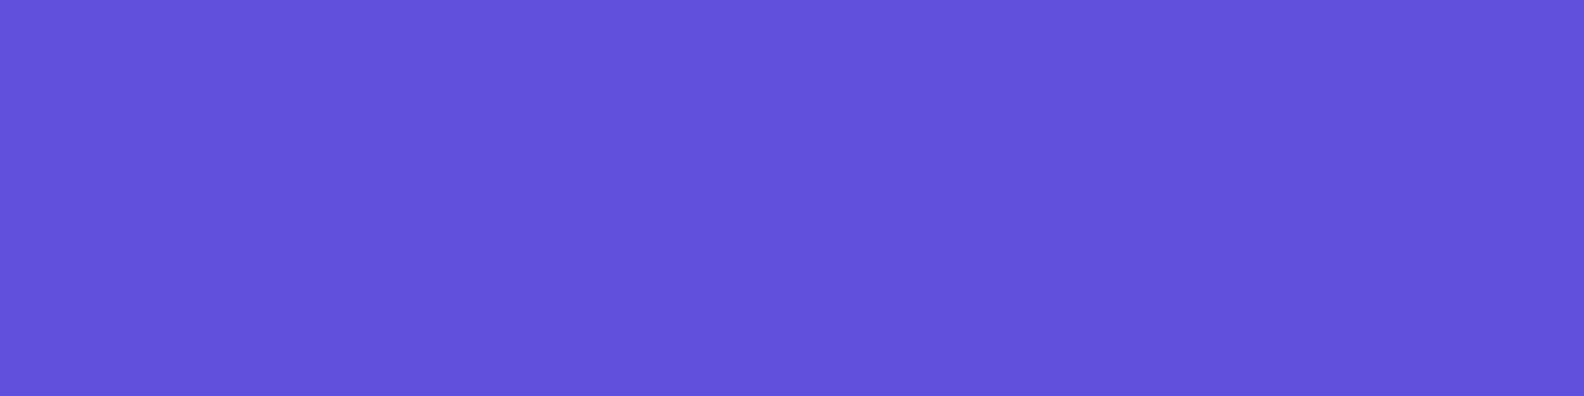 1584x396 Majorelle Blue Solid Color Background